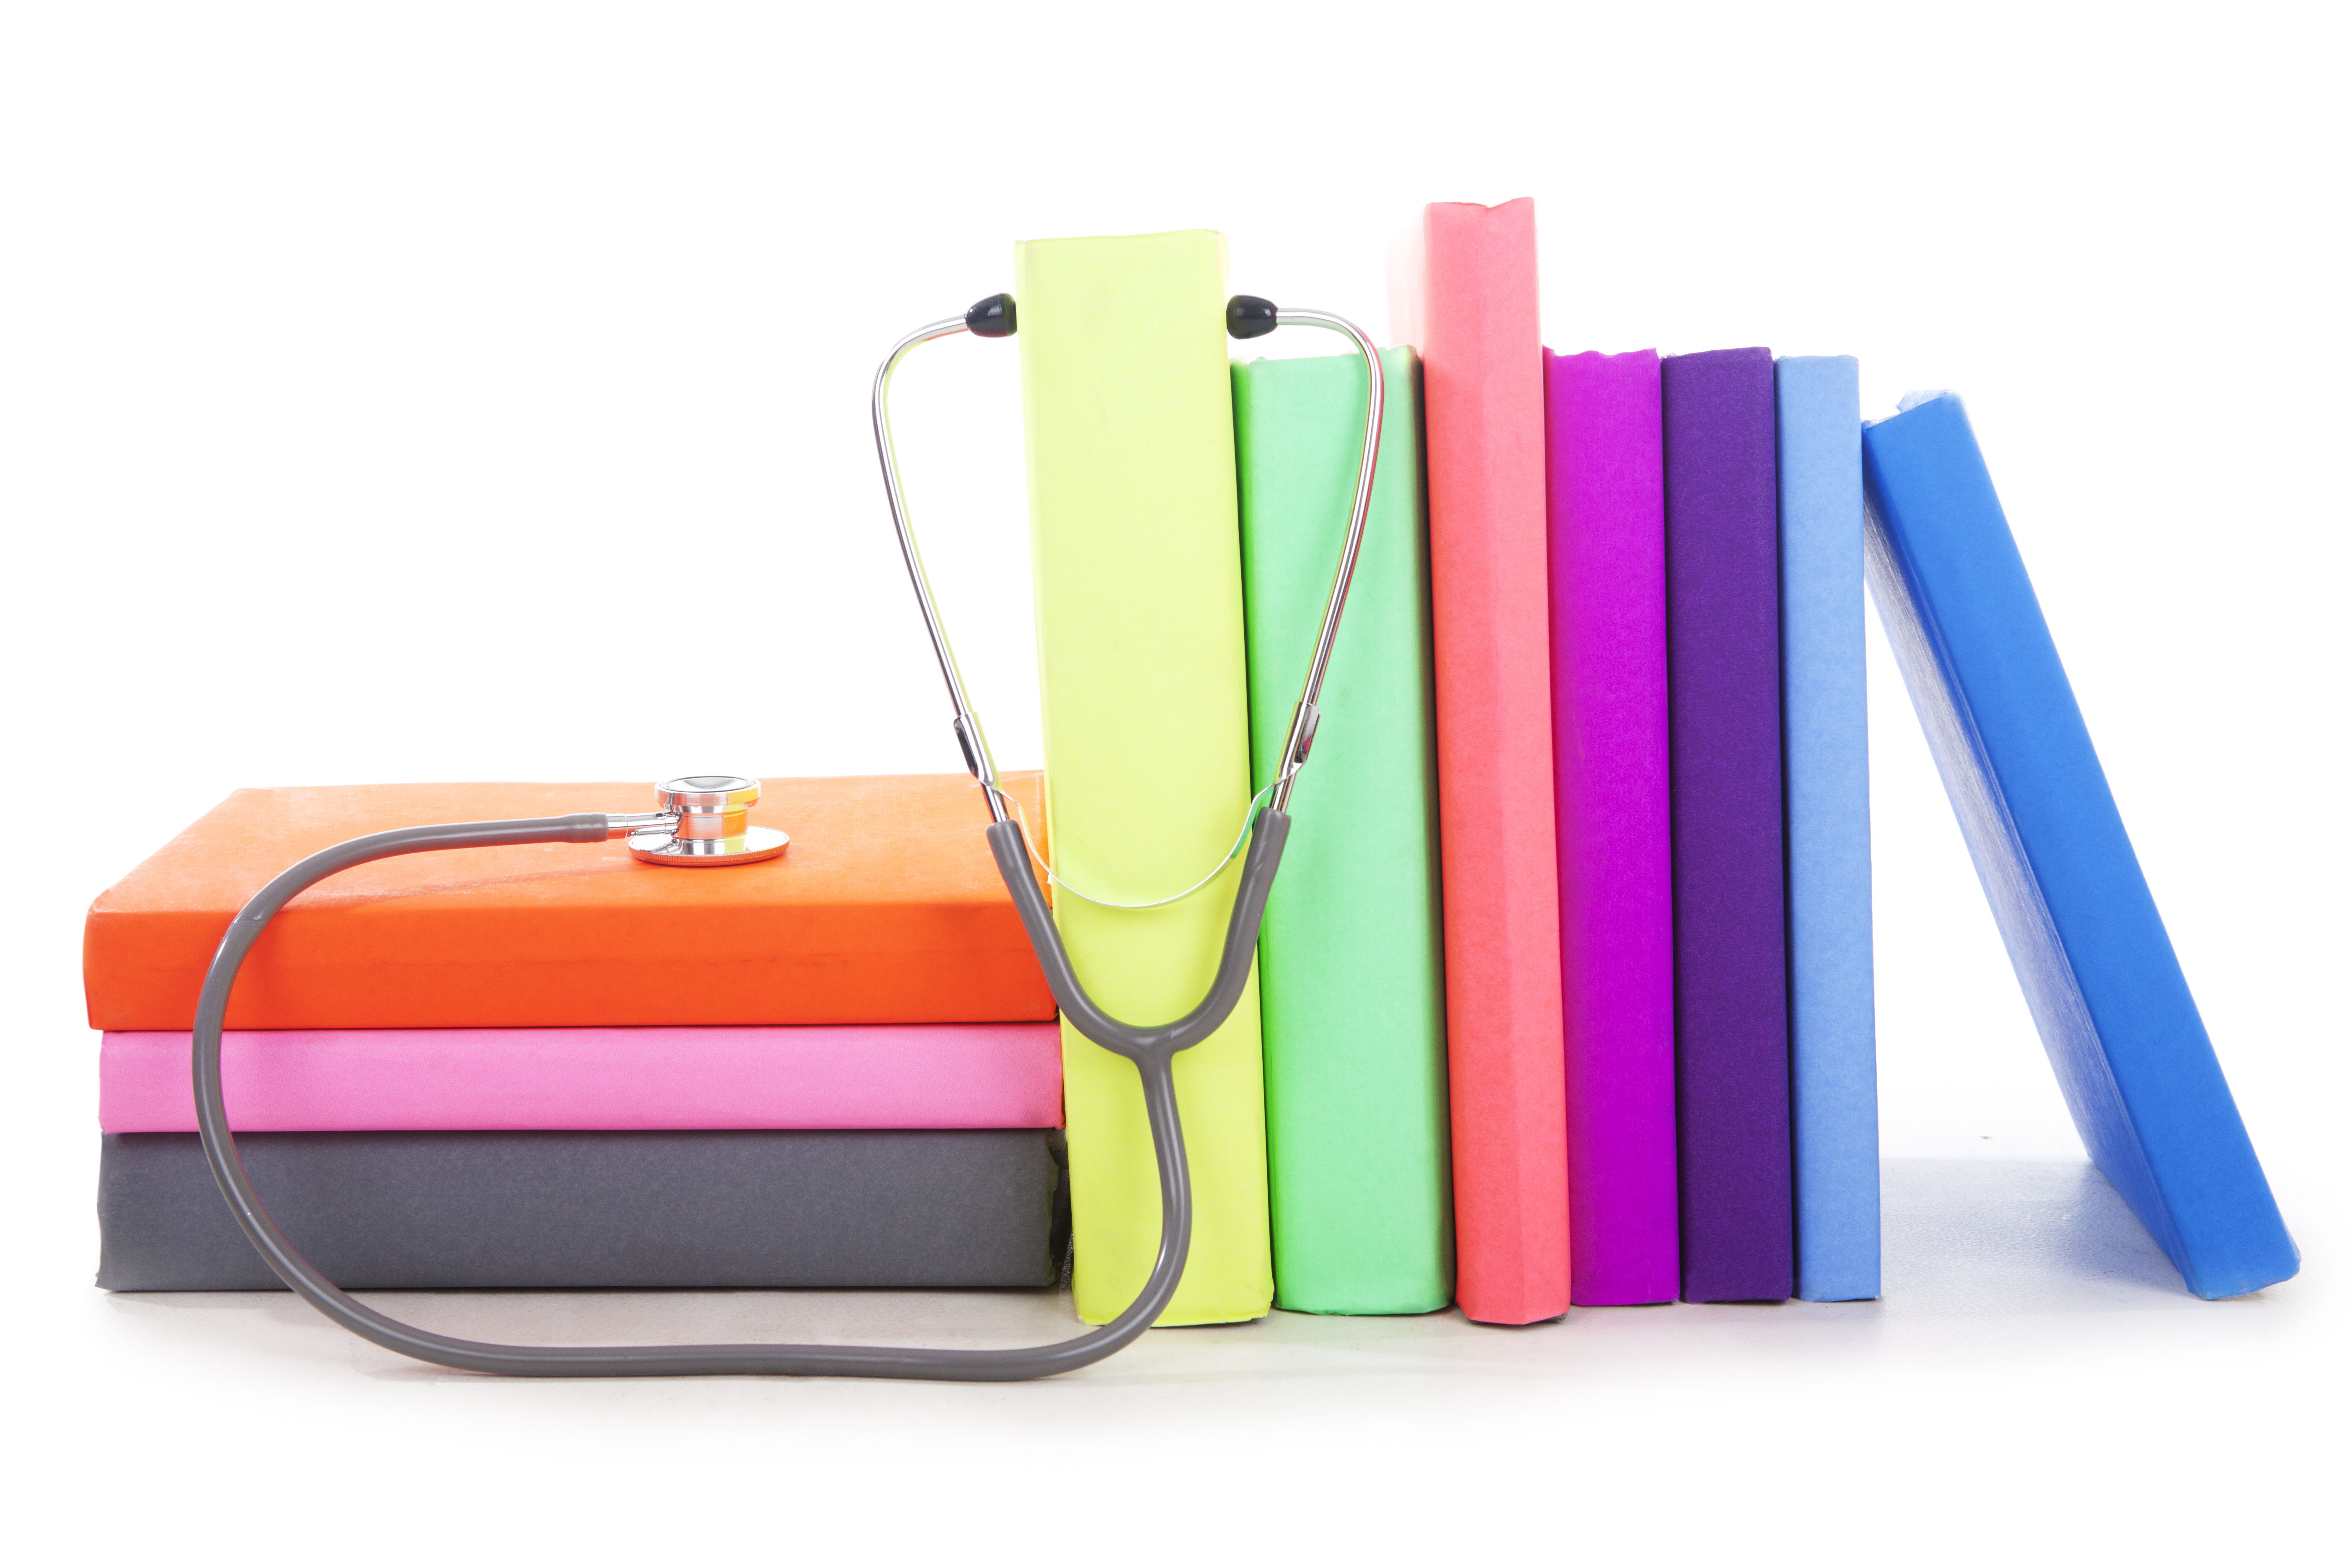 Medical books with stethoscope